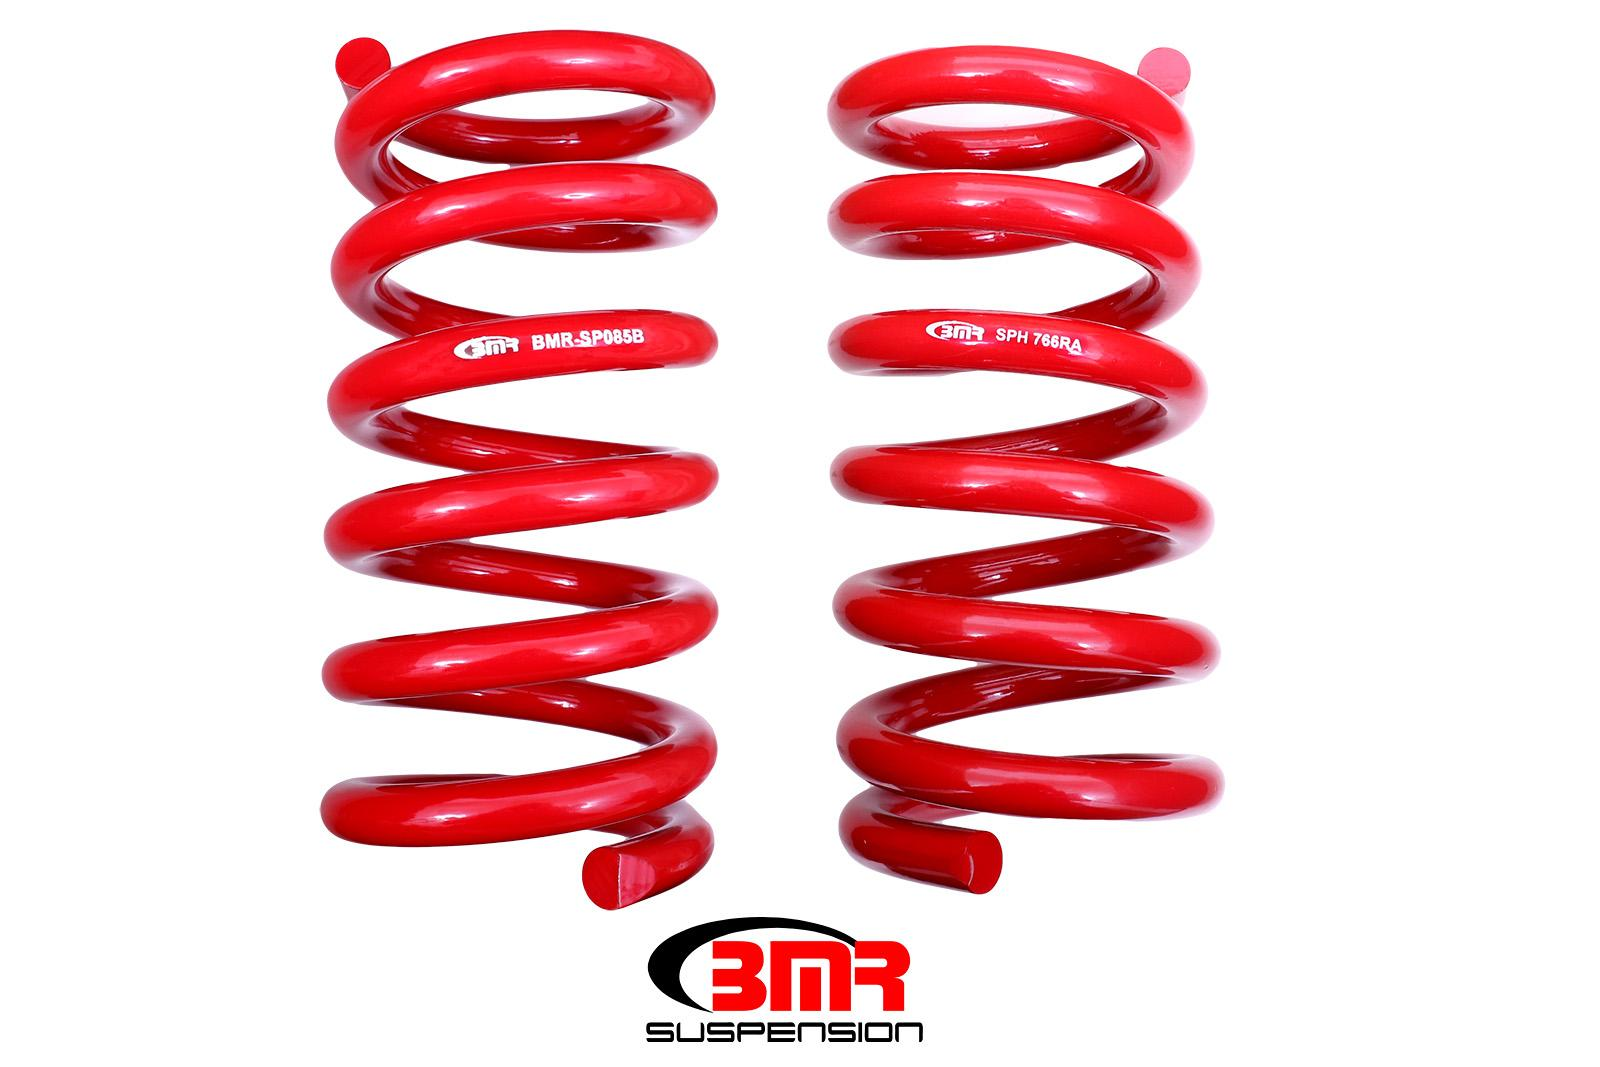 2015+ Ford Mustang BMR Suspension Rear Lowering Springs - Handling Version (GT350)